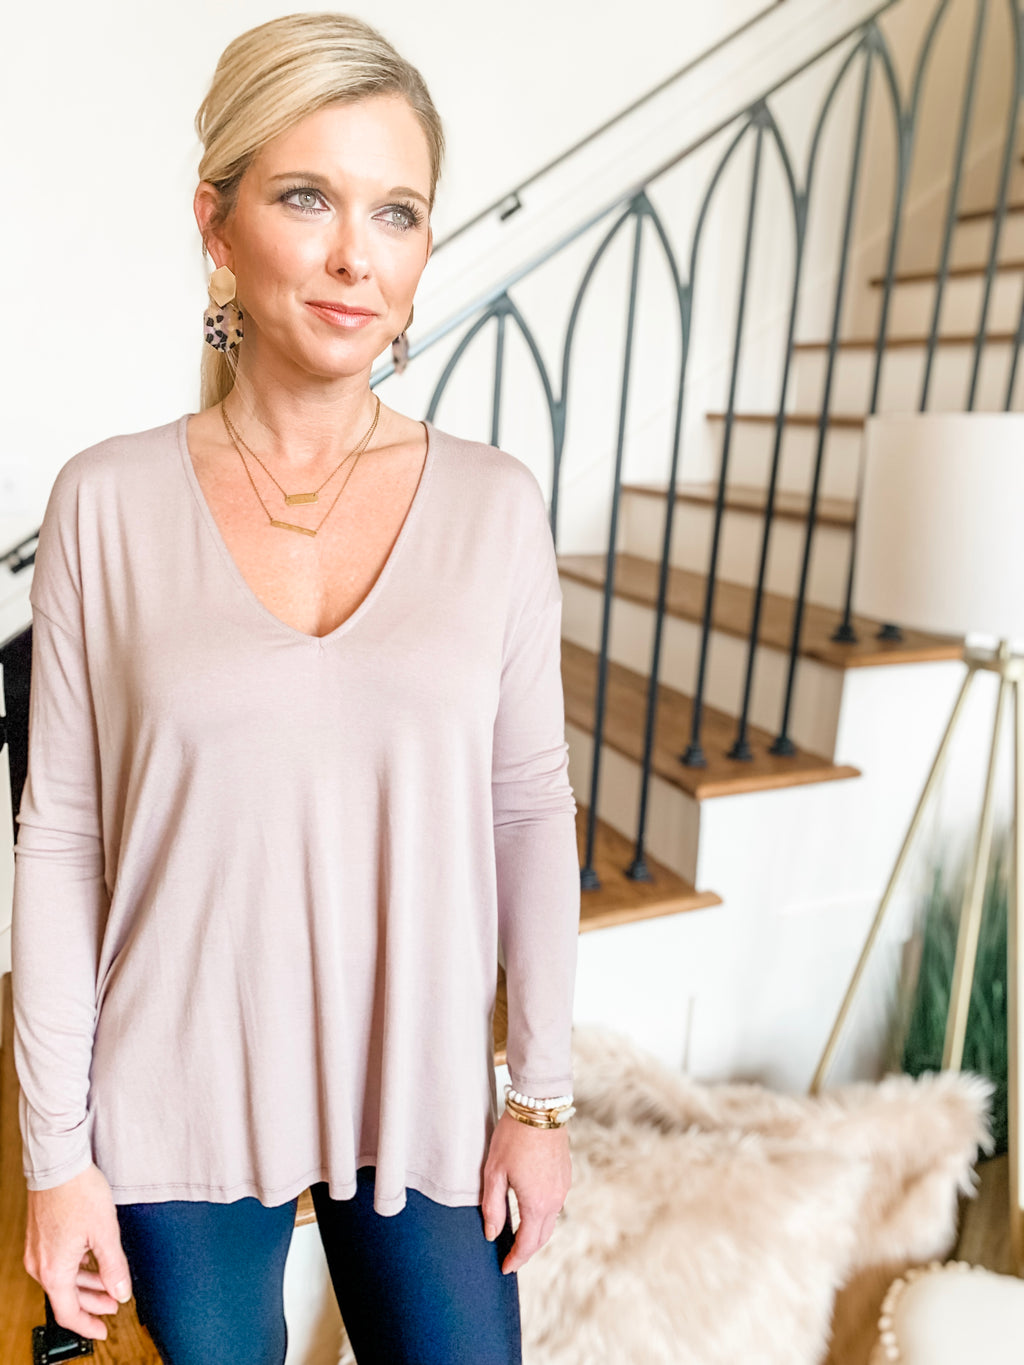 Everyday Basics- Mauve Long-Sleeved Top